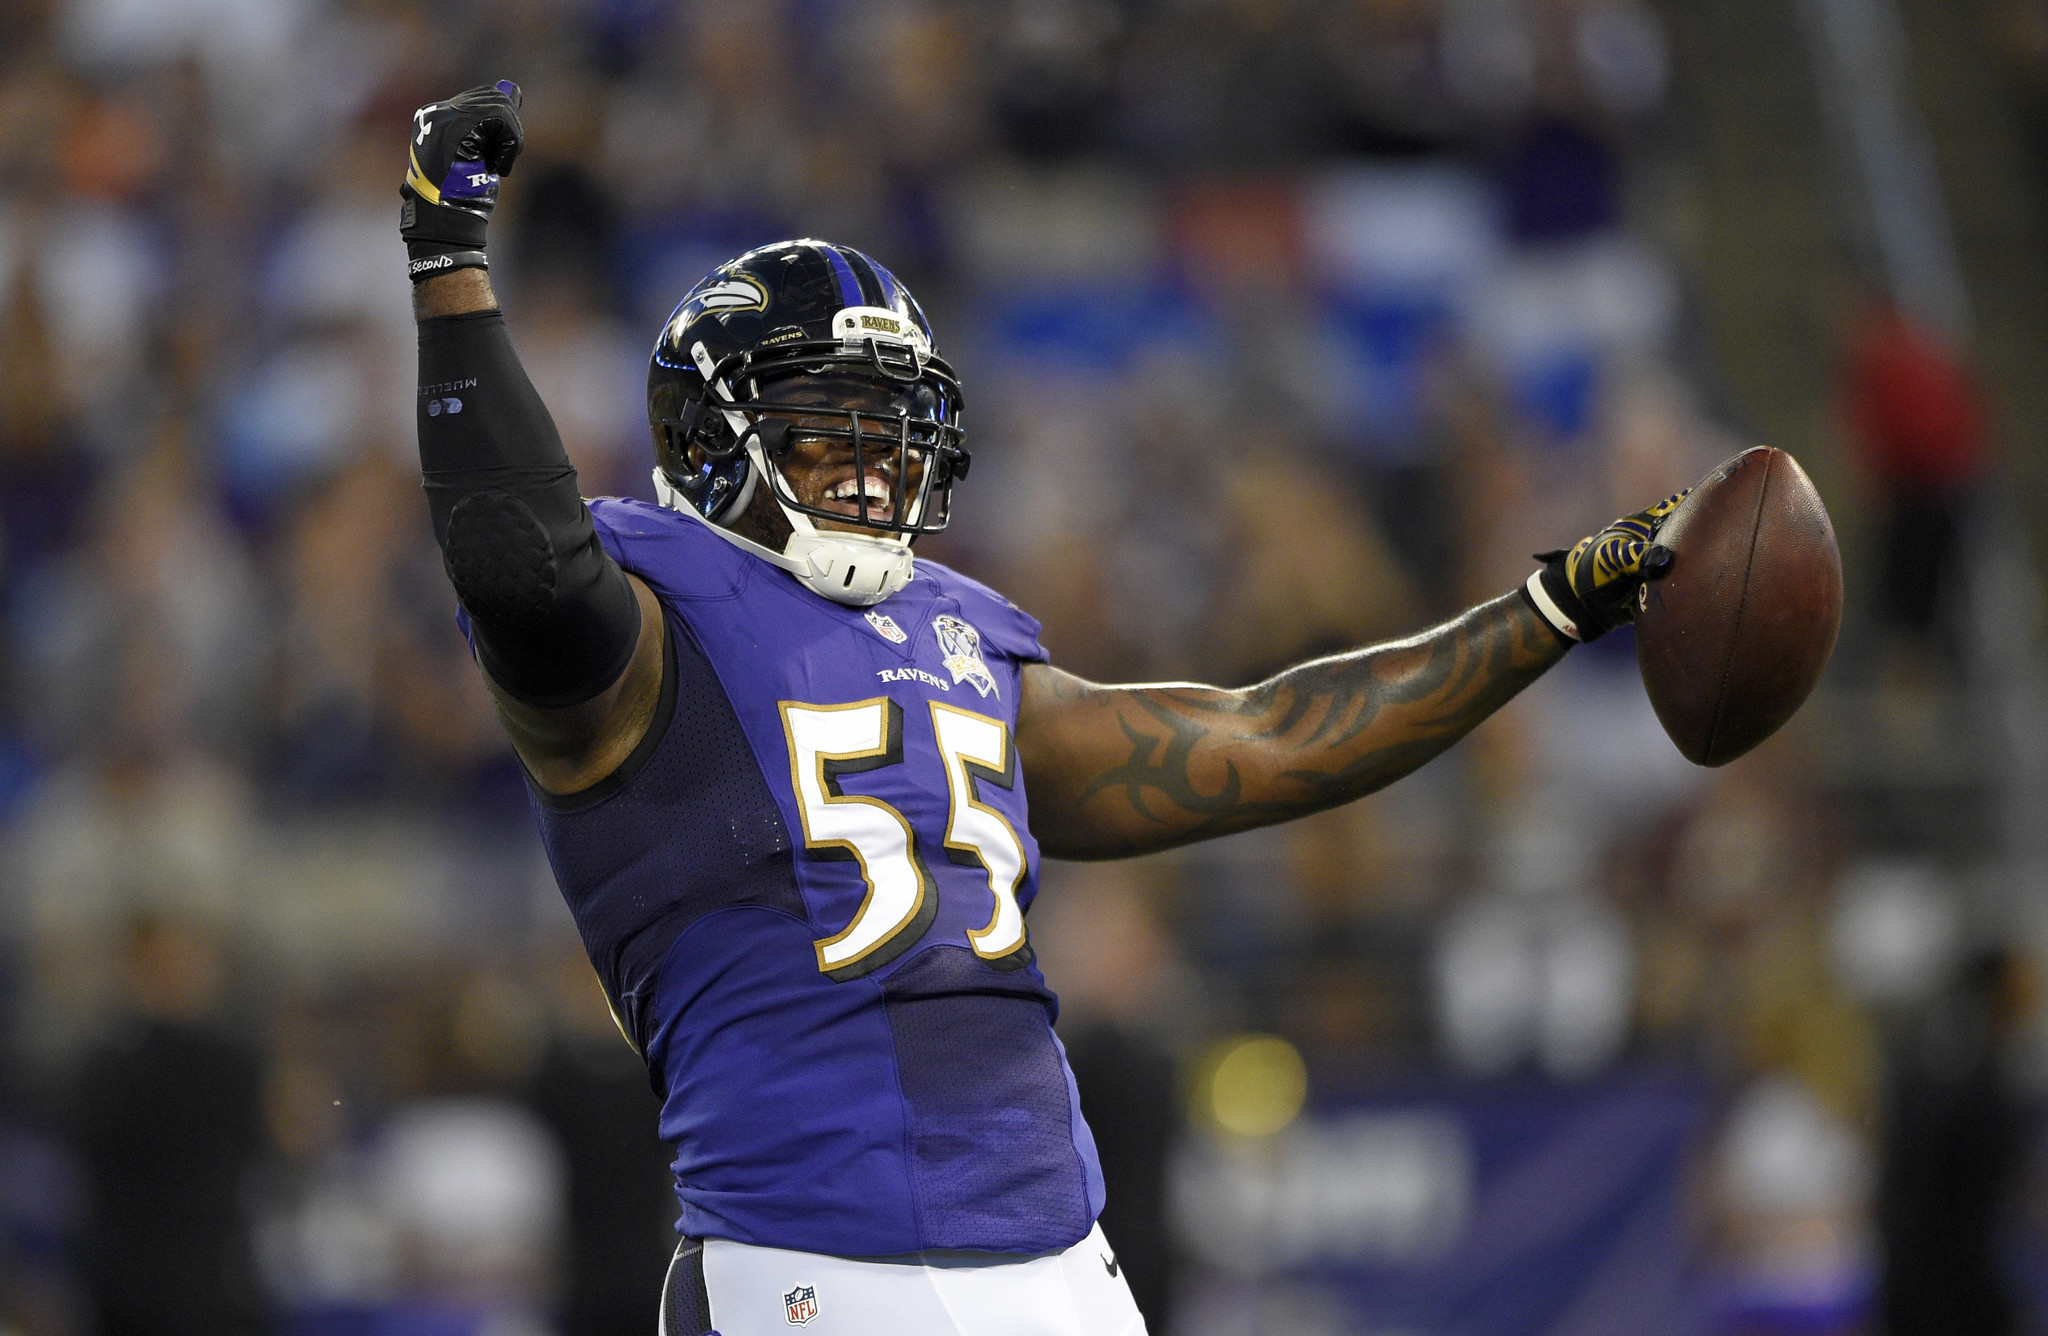 Bal-pro-bowlers-terrell-suggs-marshal-yanda-back-at-ravens-practice-on-tuesday-20161025